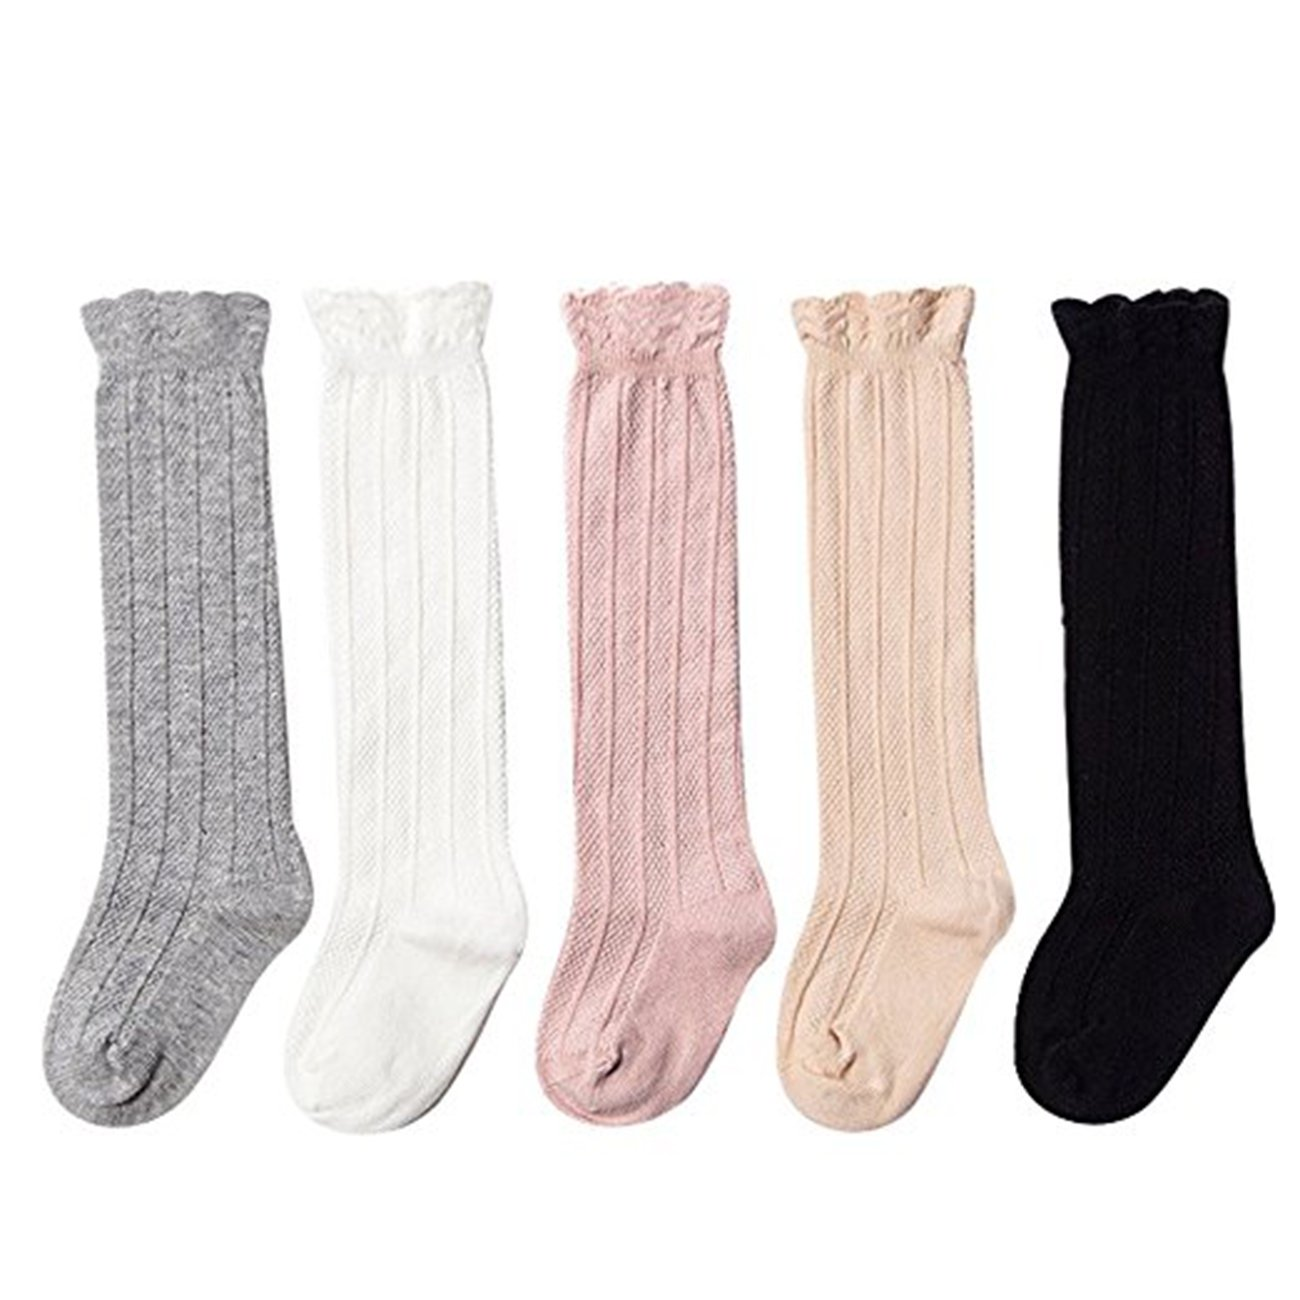 BQUBO Unisex Baby Knee Socks Lace Stocking Knit Knee High Cotton Baby Girls Knee Socks Uniform Ruffle Socks, 5 Pack